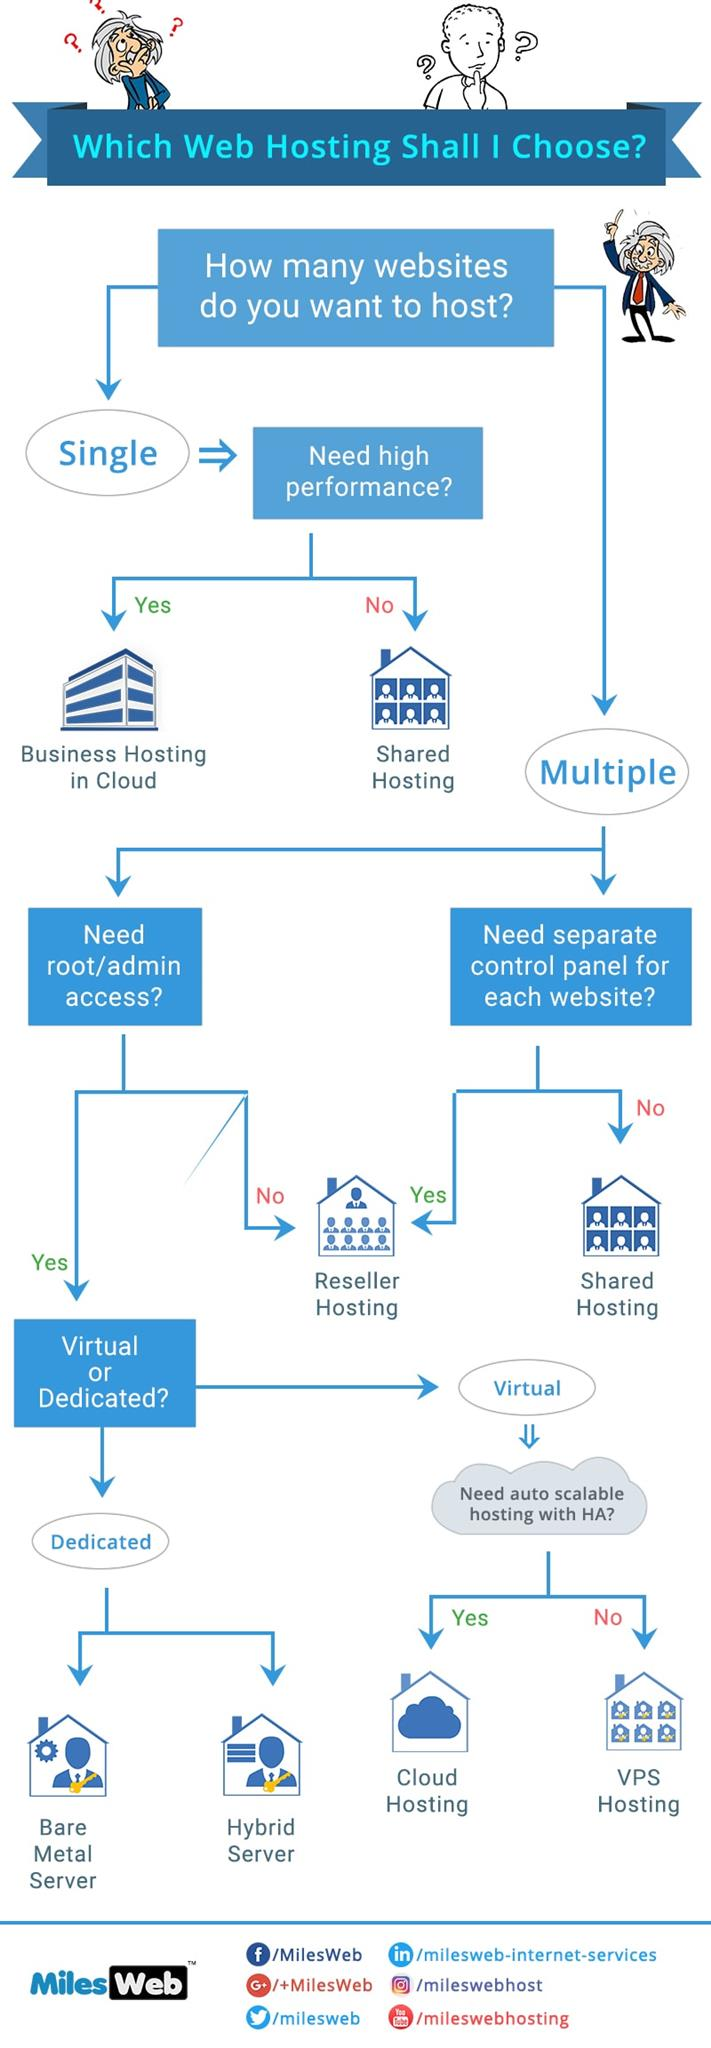 Learn how to choose the right web hosting plan for your website